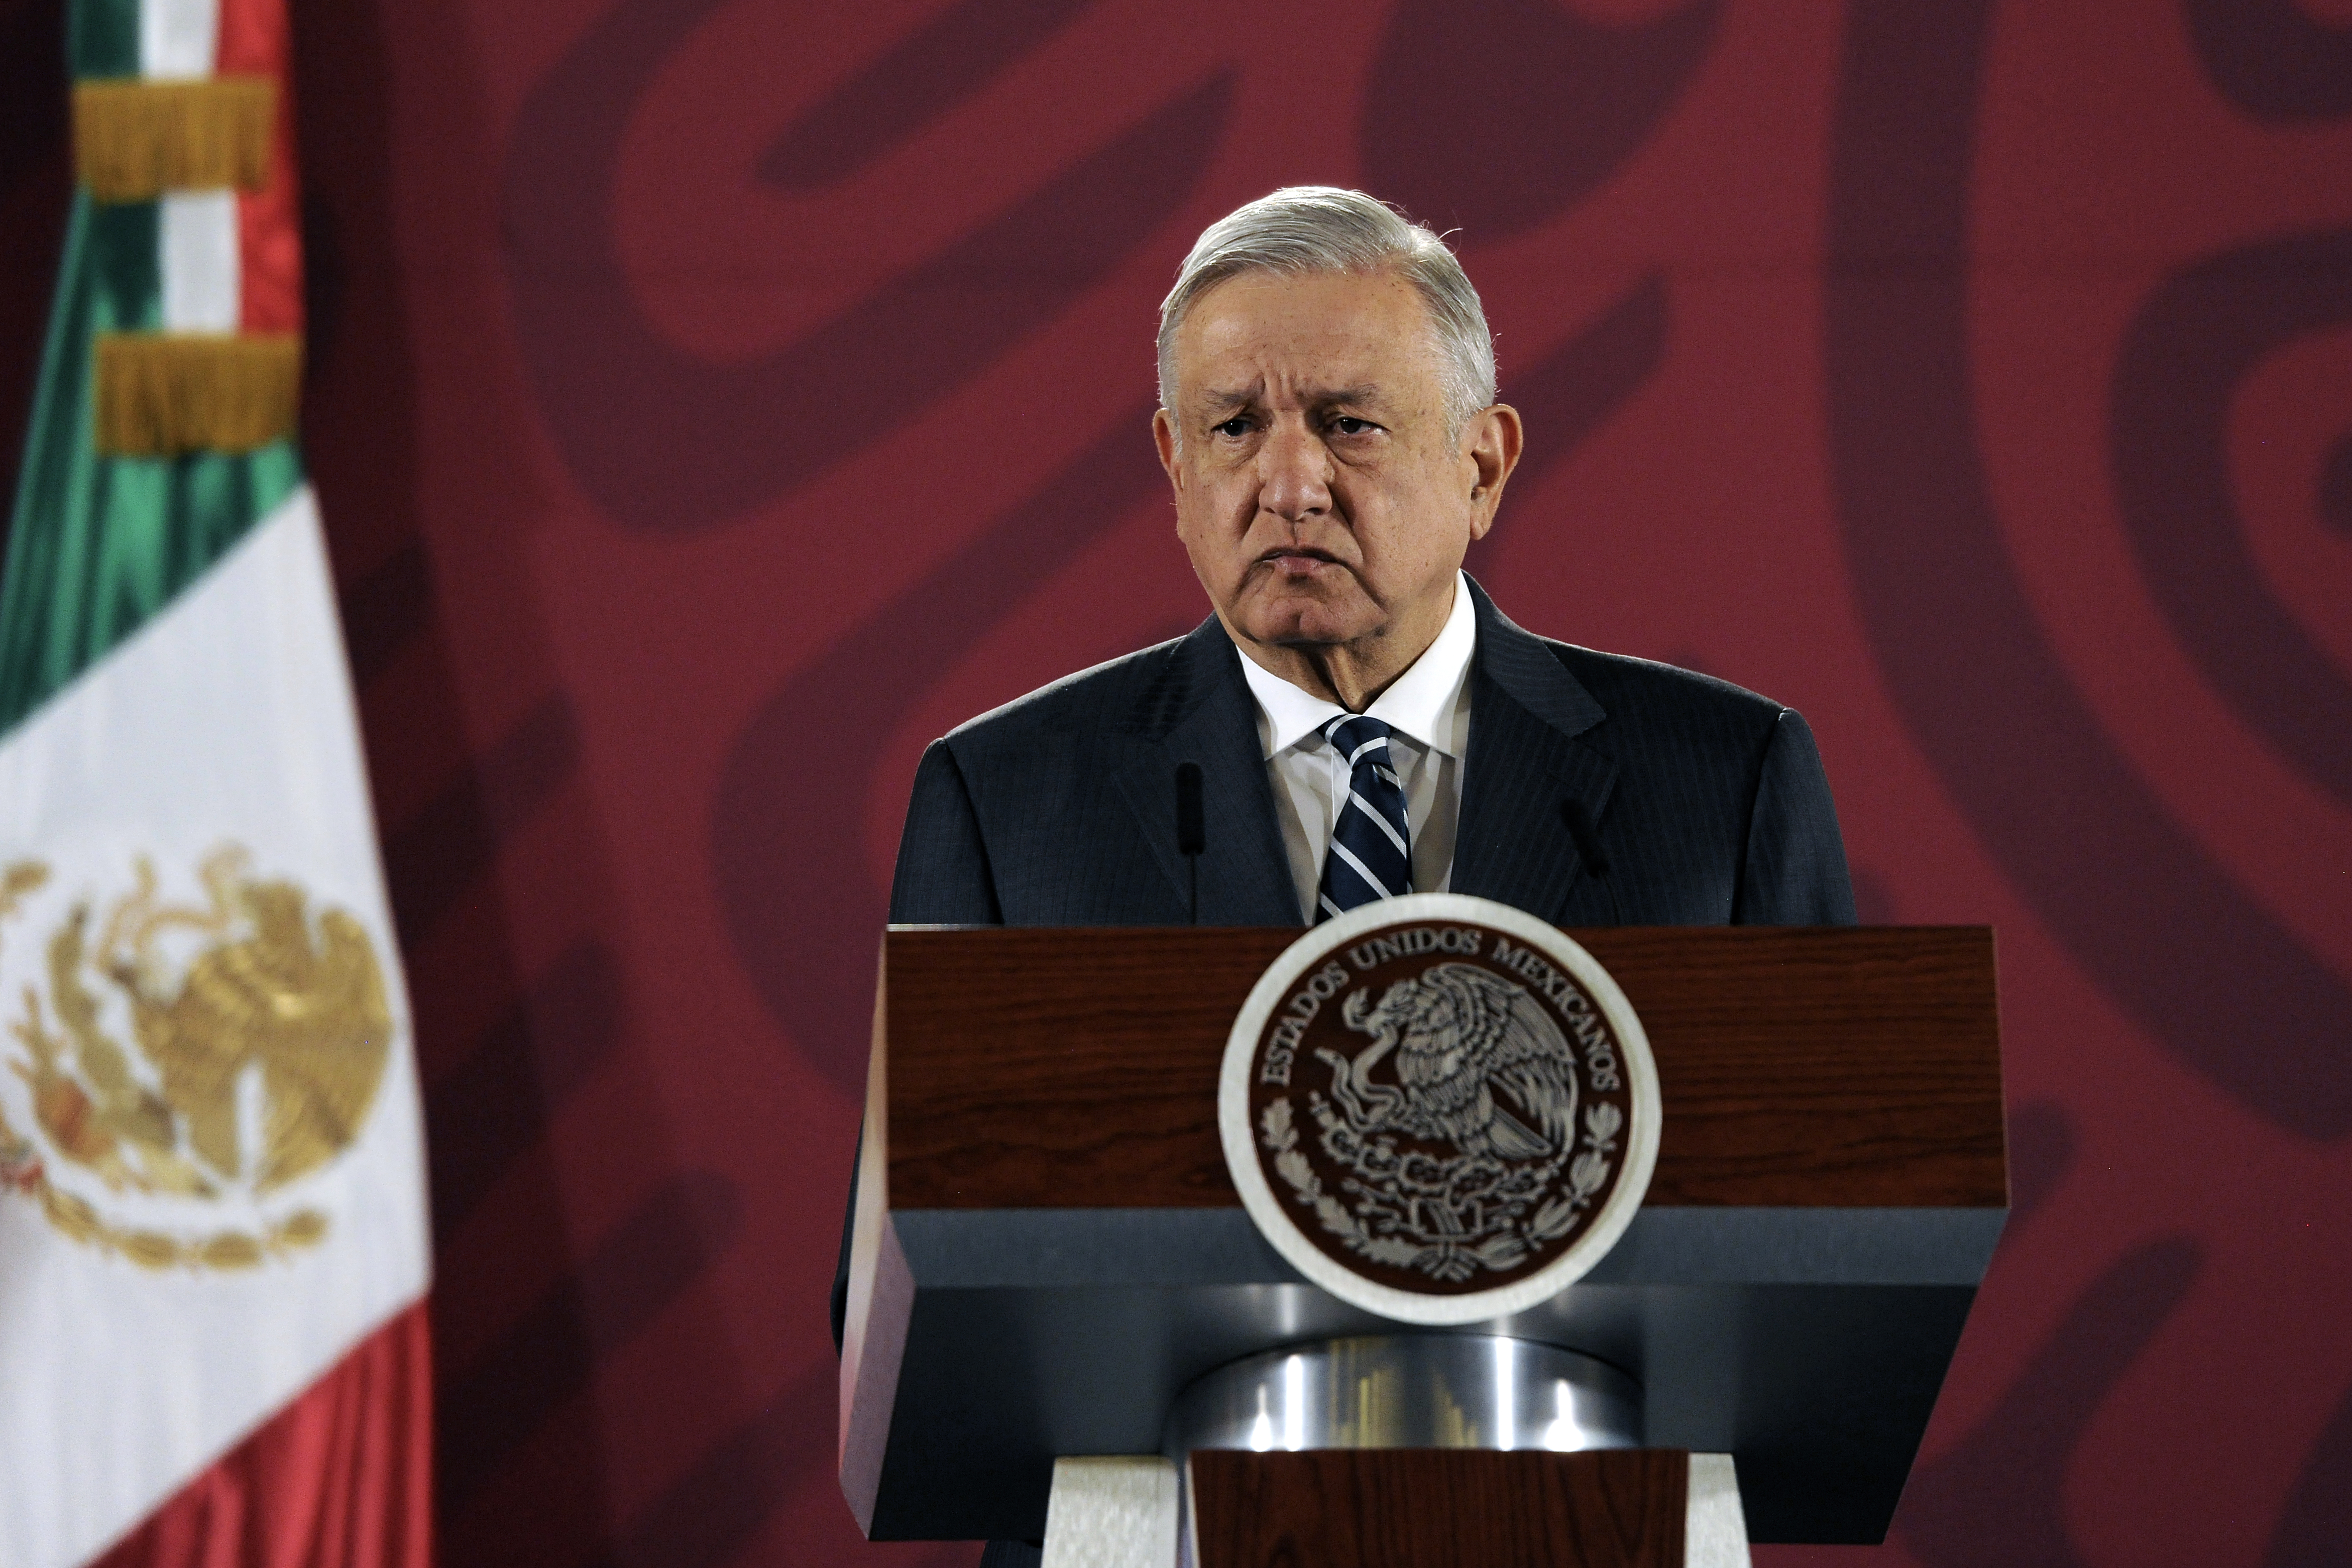 Intruder Raises Questions About Mexican President's Security